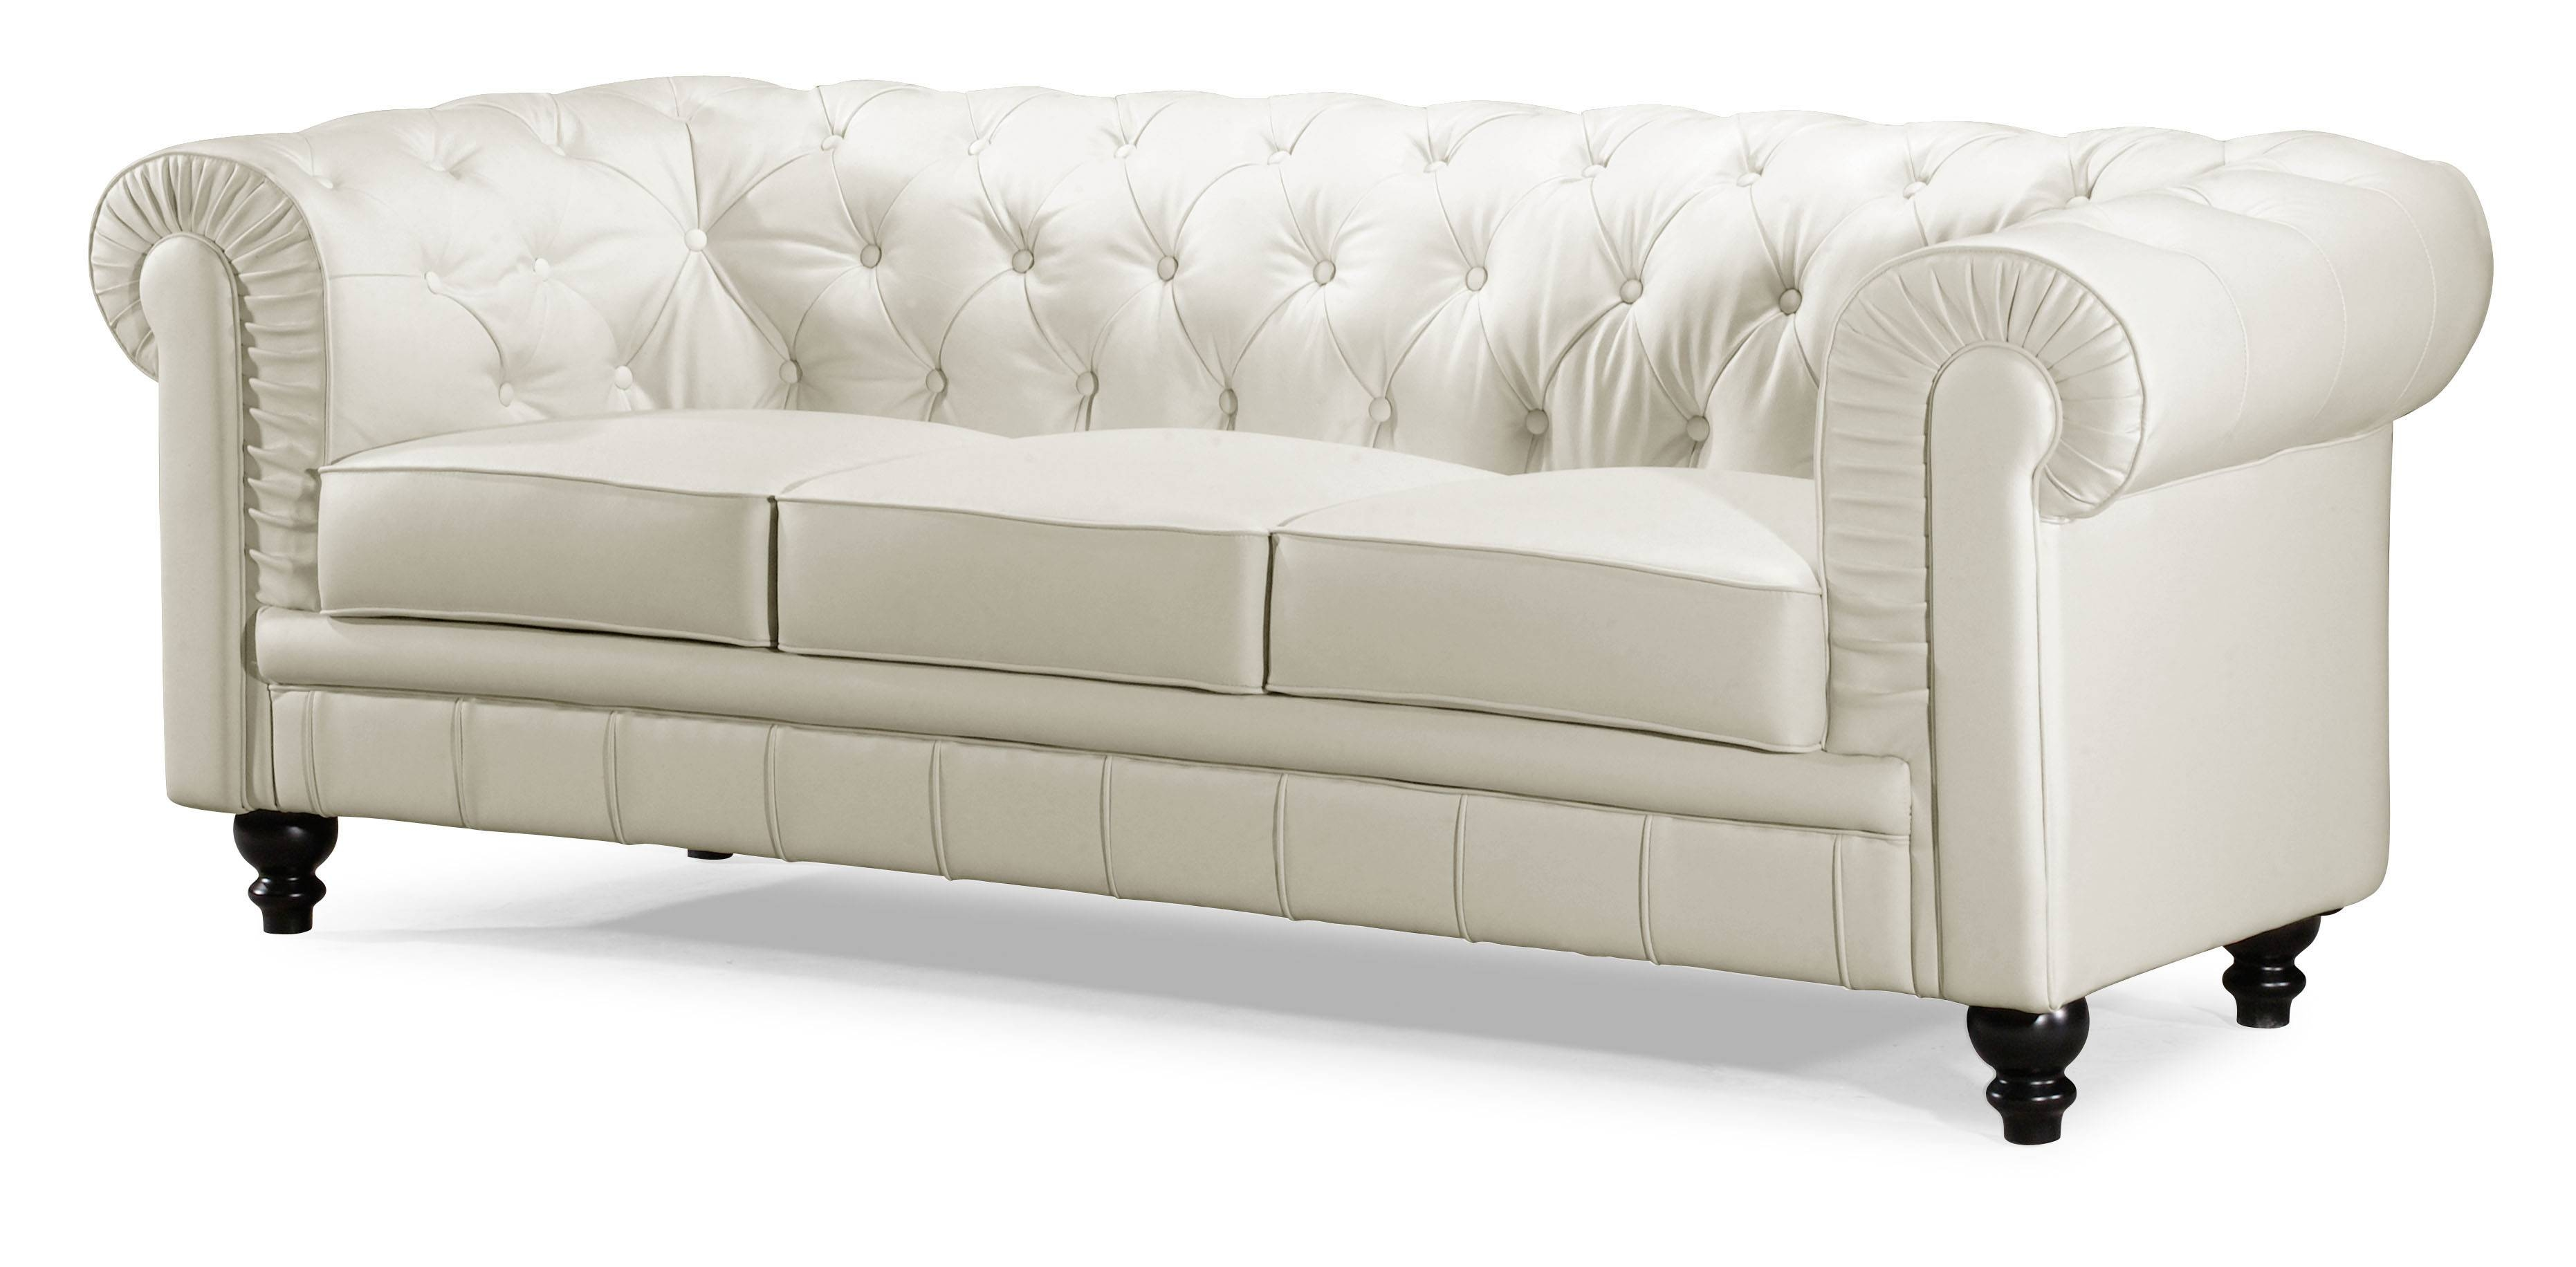 Tufted Sofa Set Cheap | Tehranmix Decoration pertaining to Cheap Tufted Sofas (Image 28 of 30)